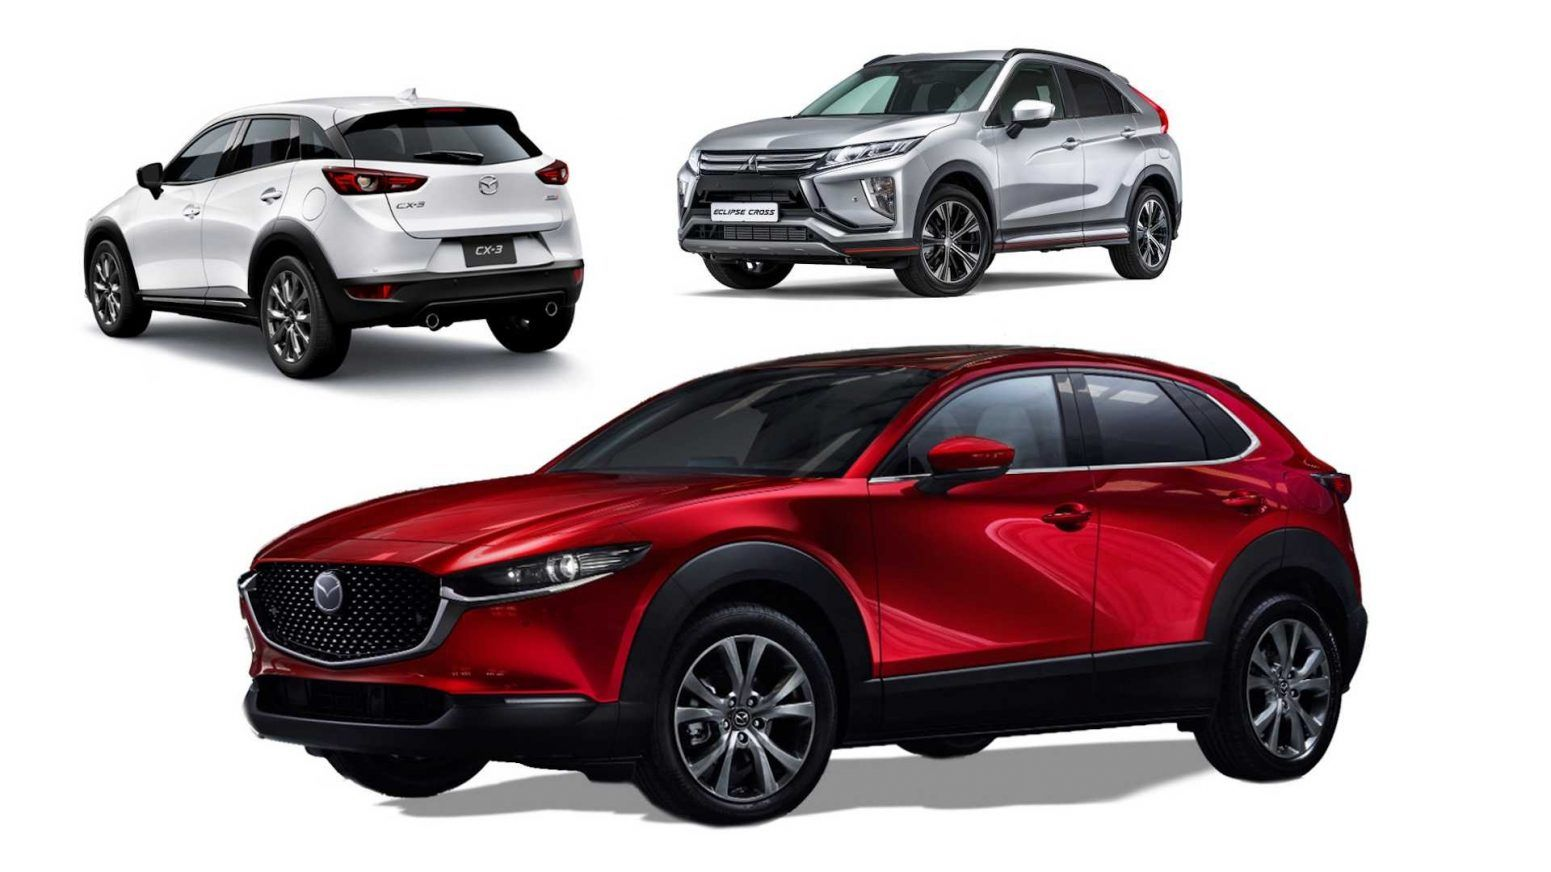 2020 Mazda CX3 Review, Design, Price, Release Date